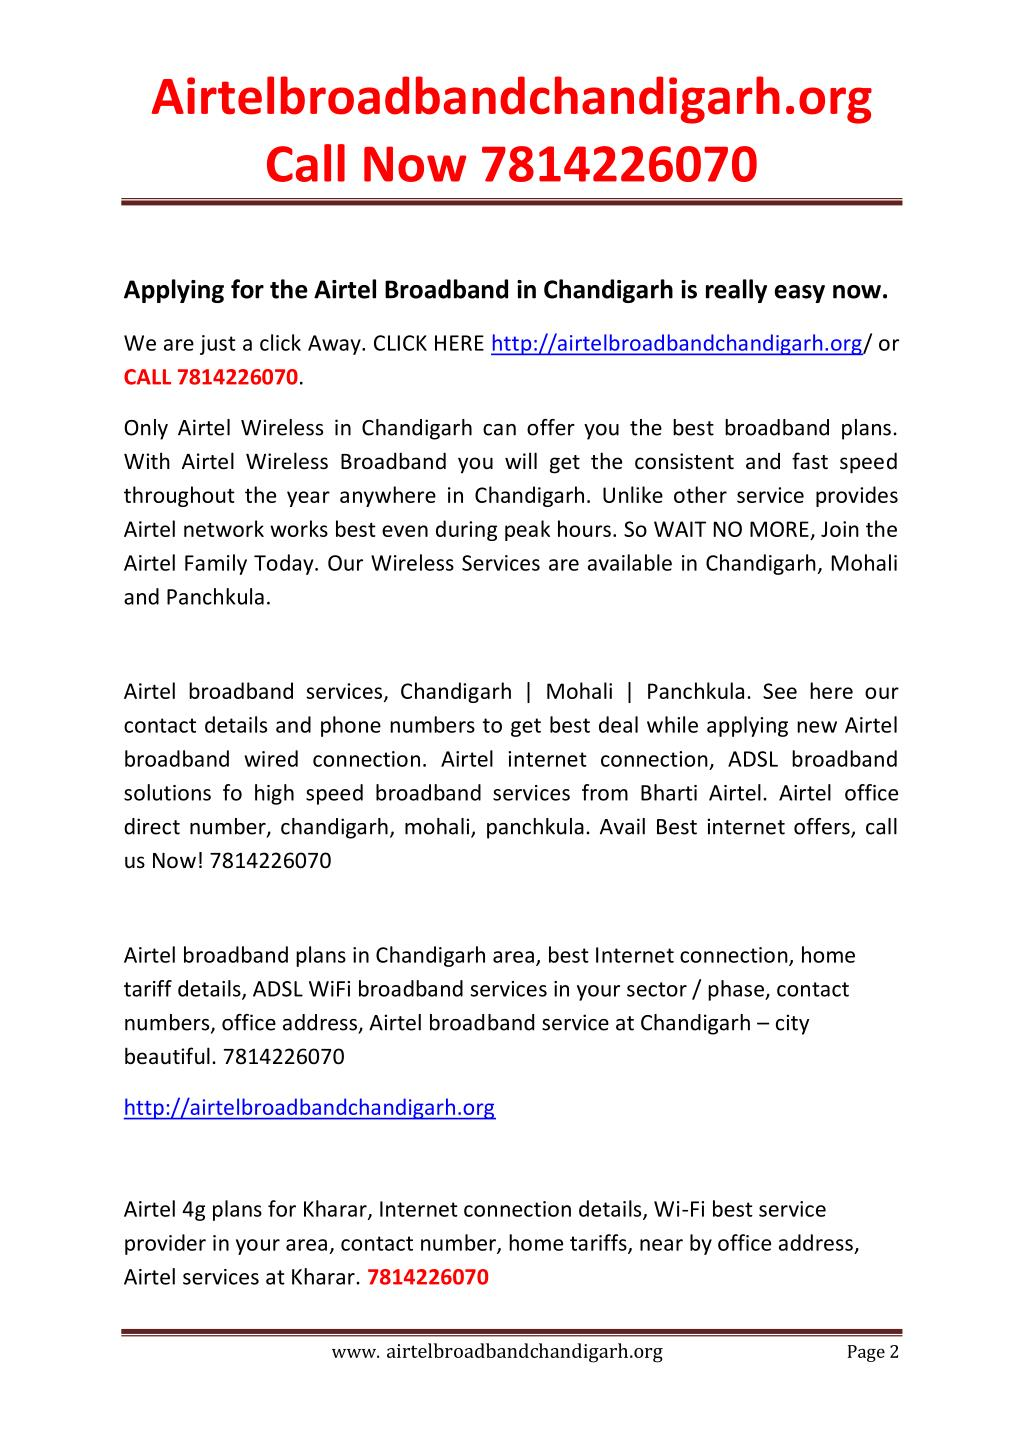 PPT - Airtel Broadband Connection in Chandigarh,Mohali